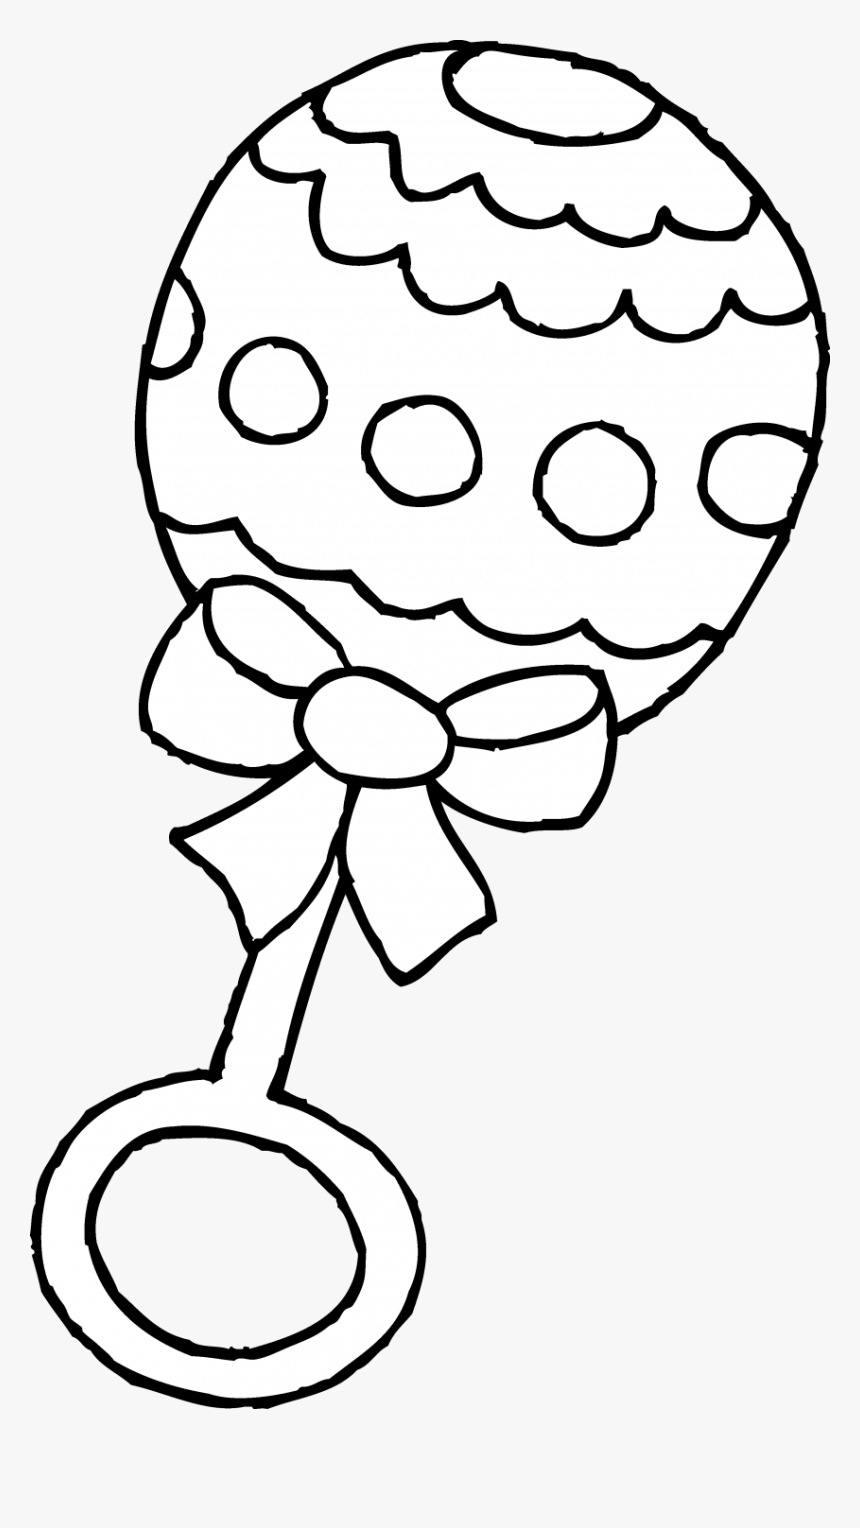 Baby Shower Coloring Pages Wedding Guest Book Elephant - Baby Bottle Coloring Pages, HD Png Download, Free Download